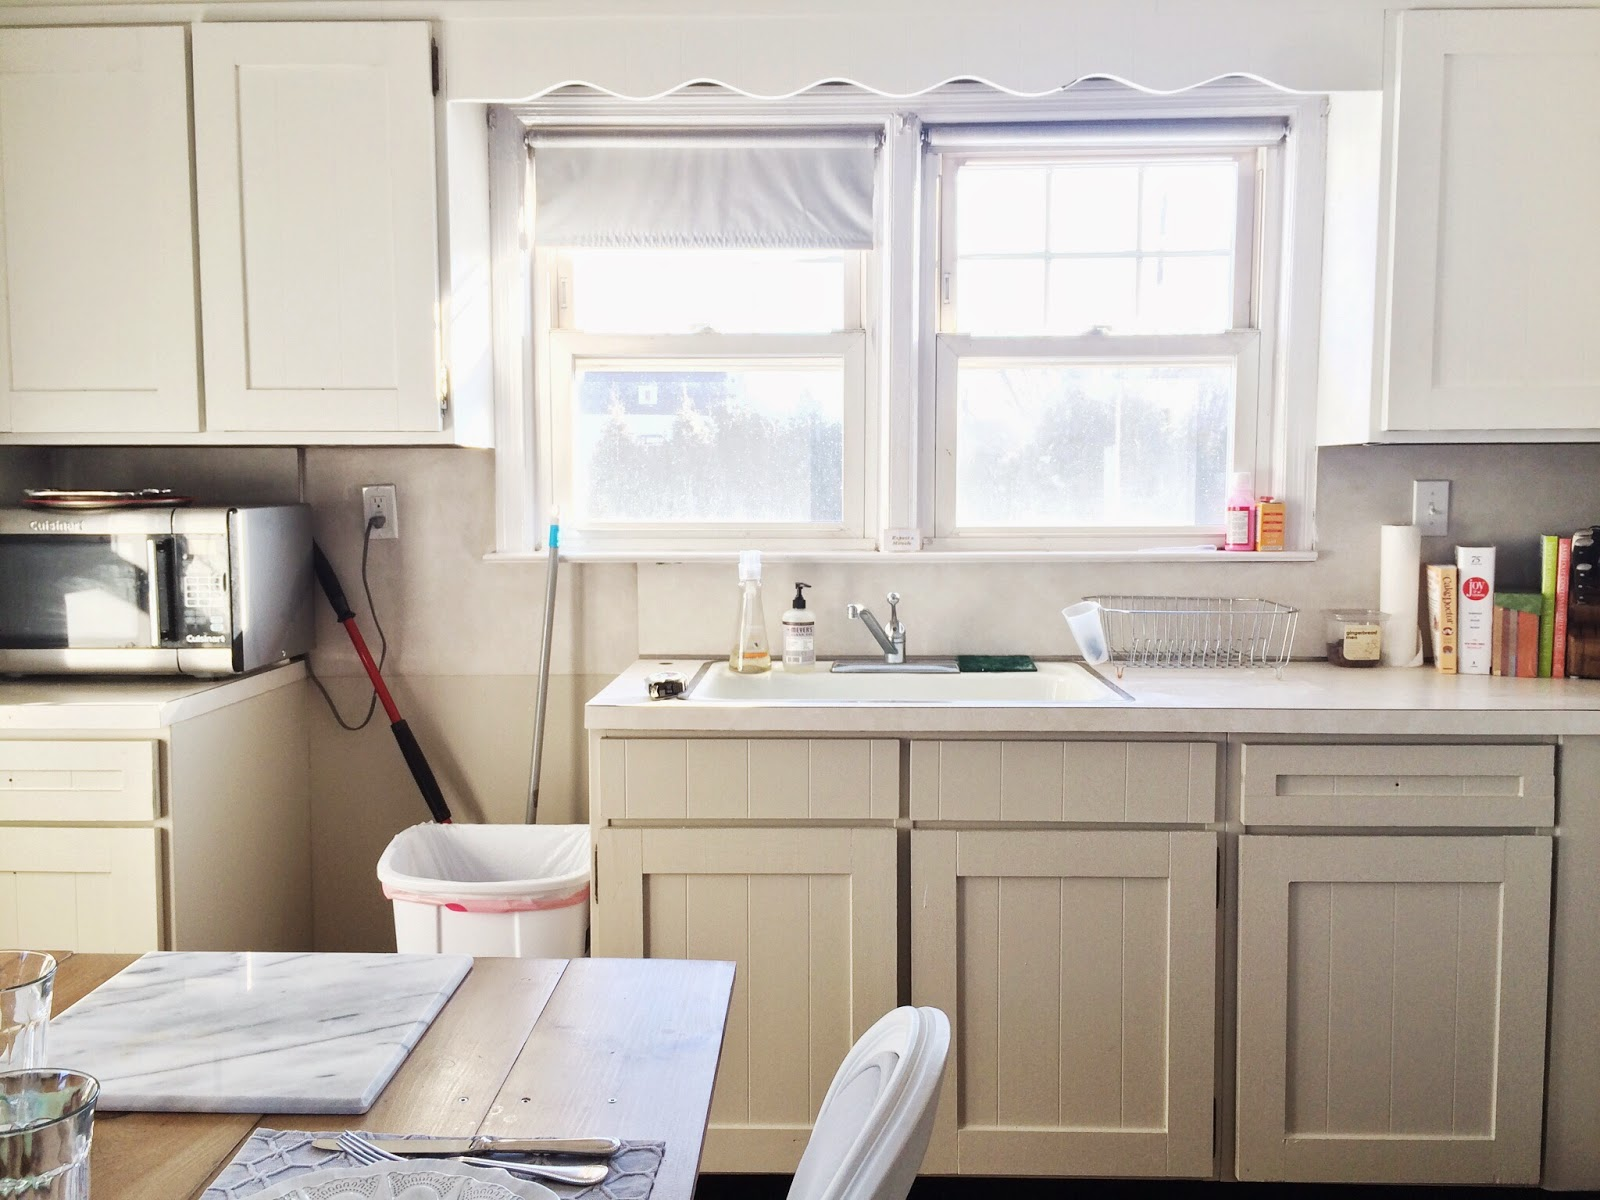 How To Paint Add Shaker Trim Kitchen Cabinets